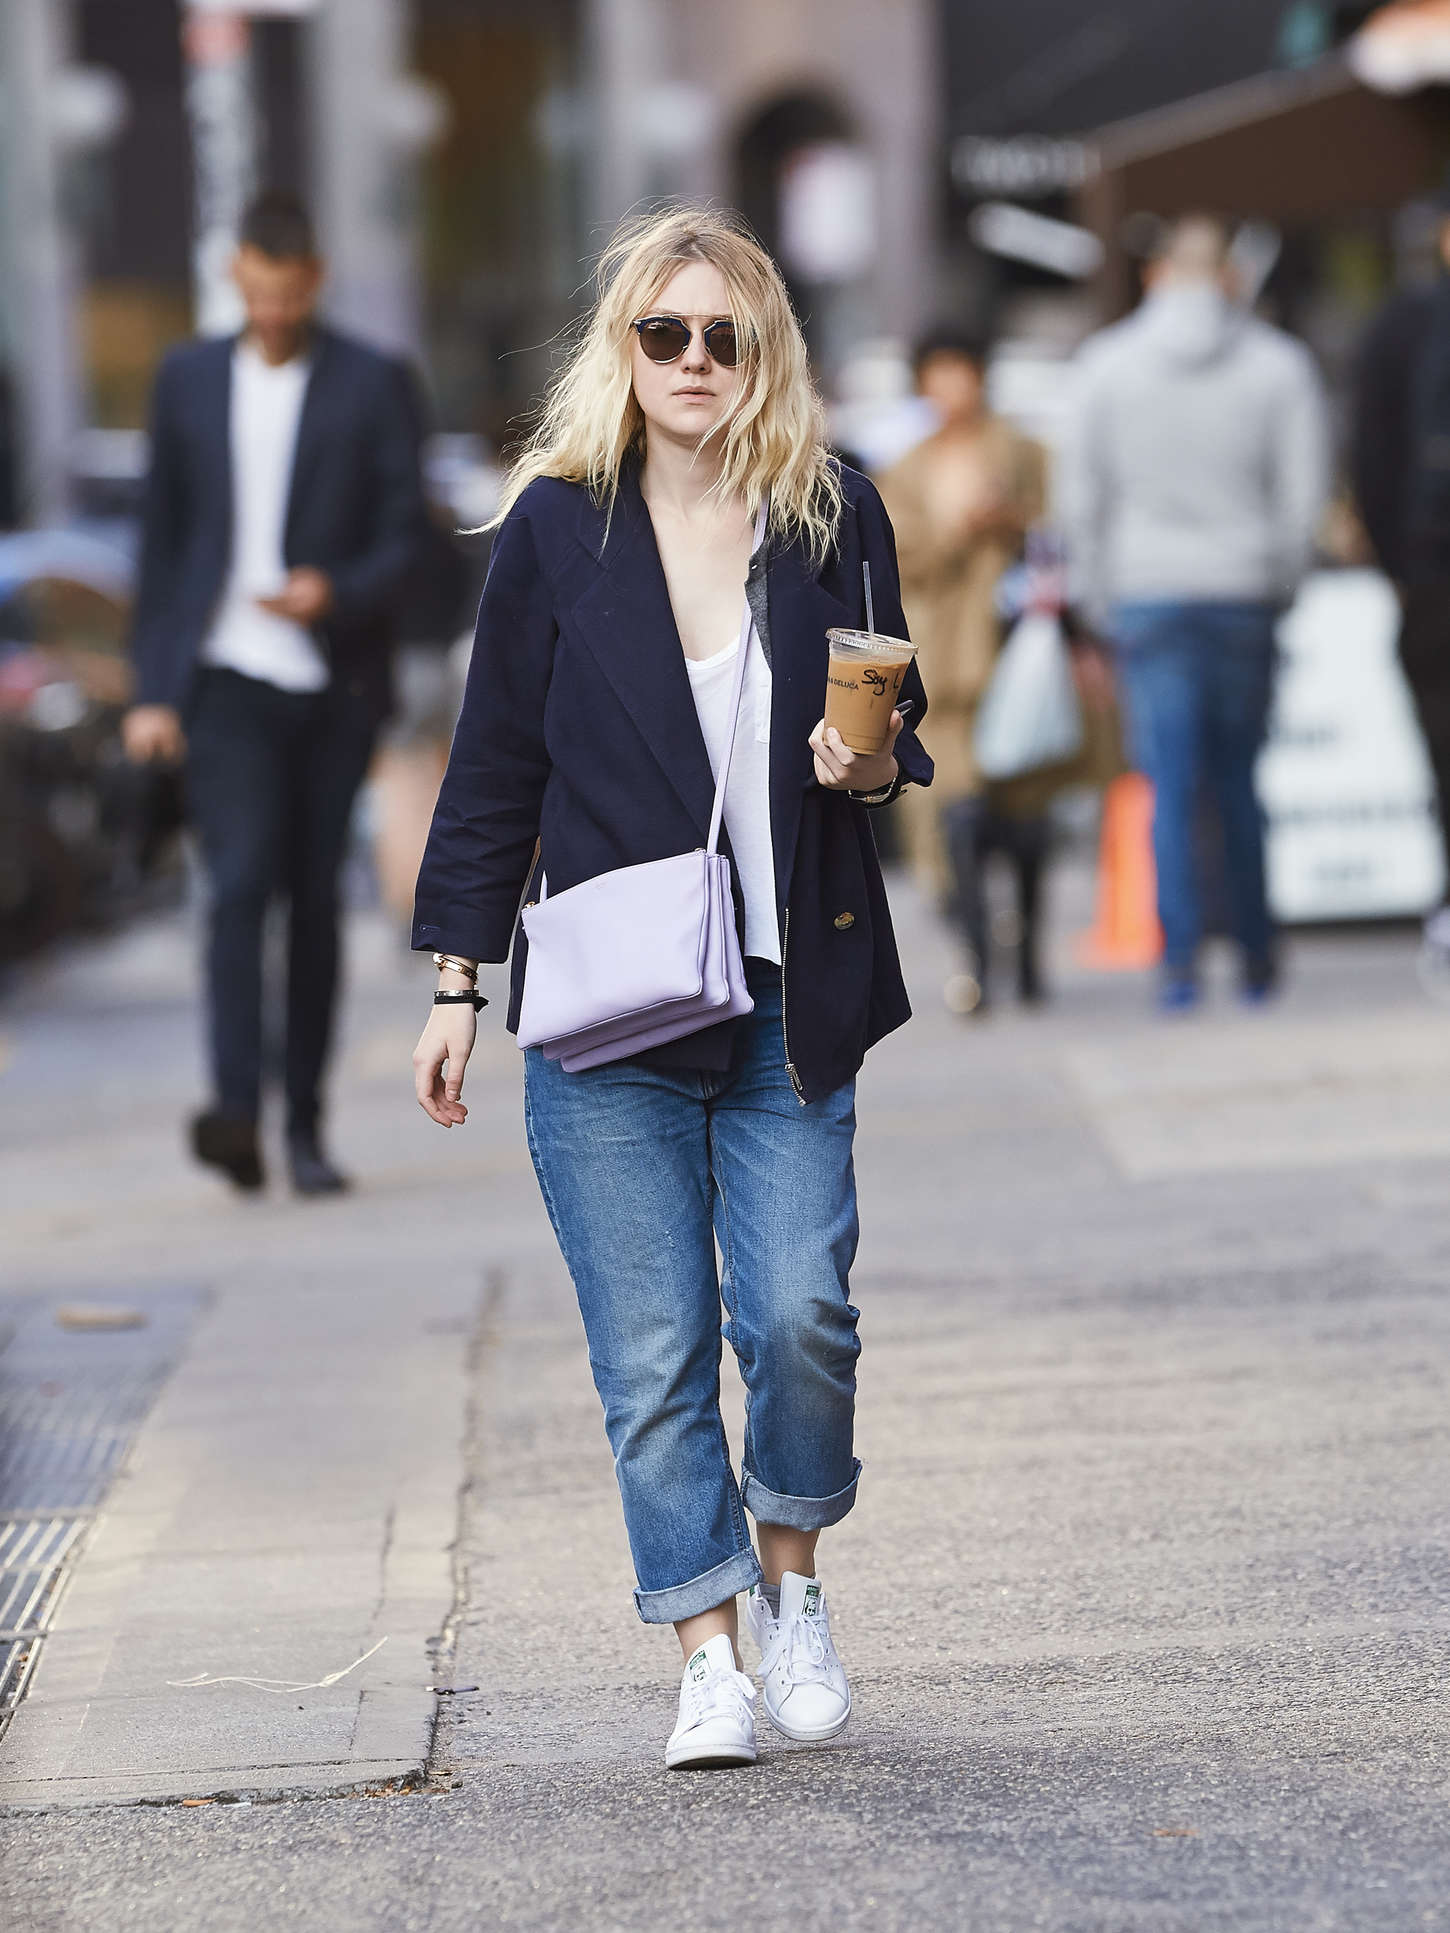 Dakota Fanning 2014 : Dakota Fanning in Jeans -06